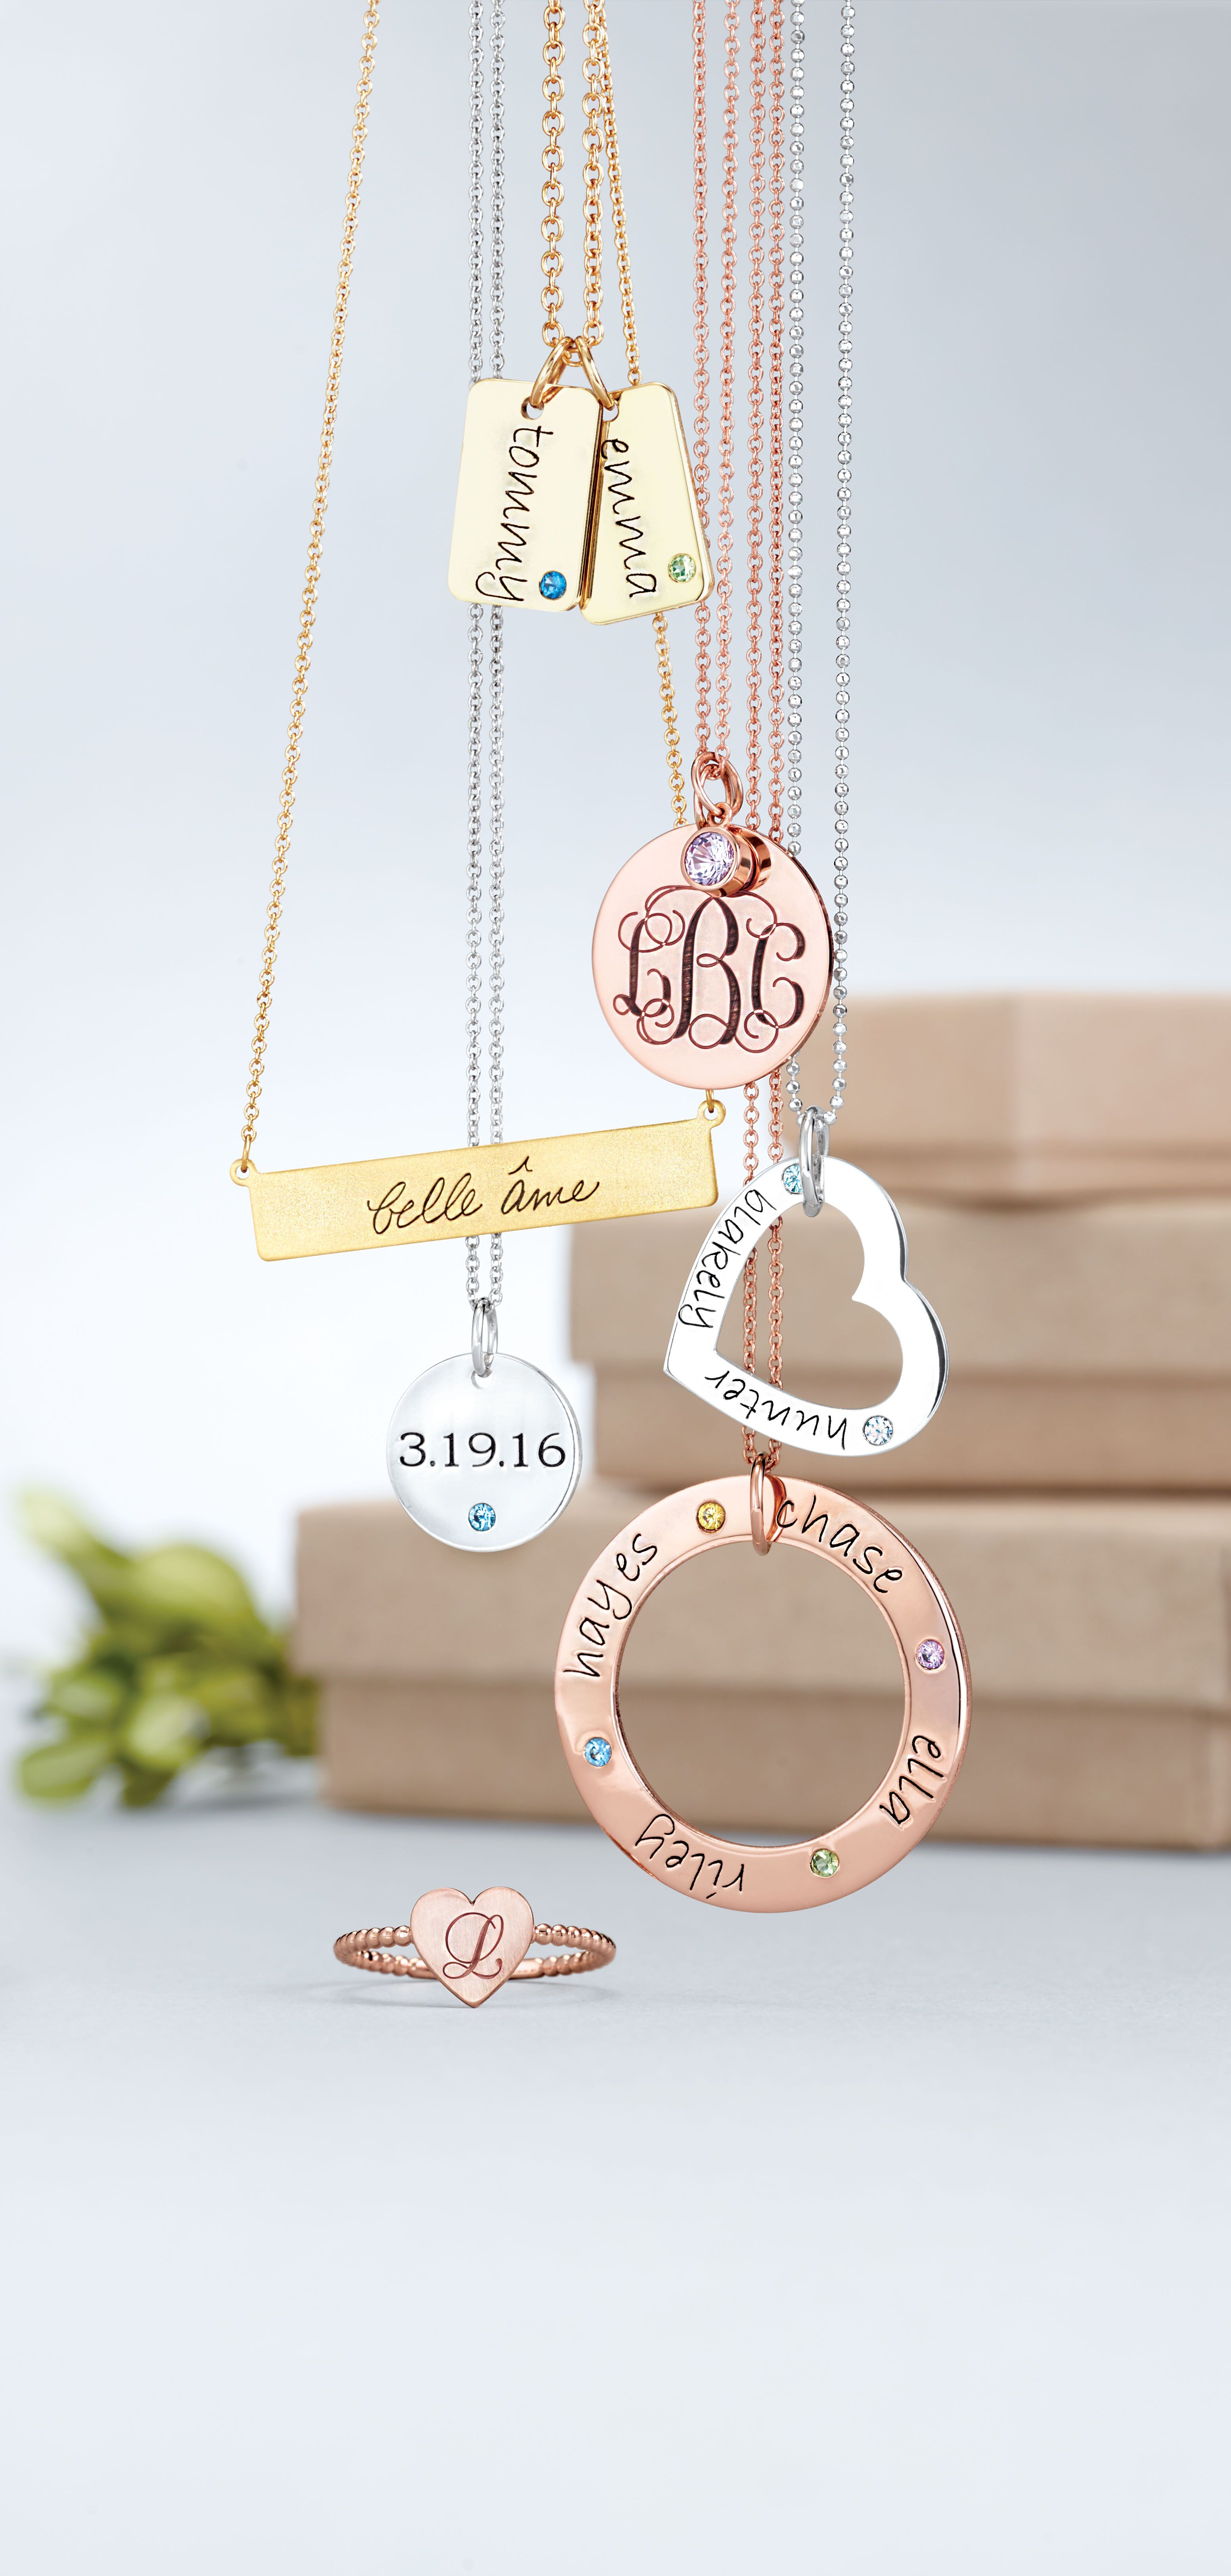 get personal with posh birthstone and engravable jewelry express